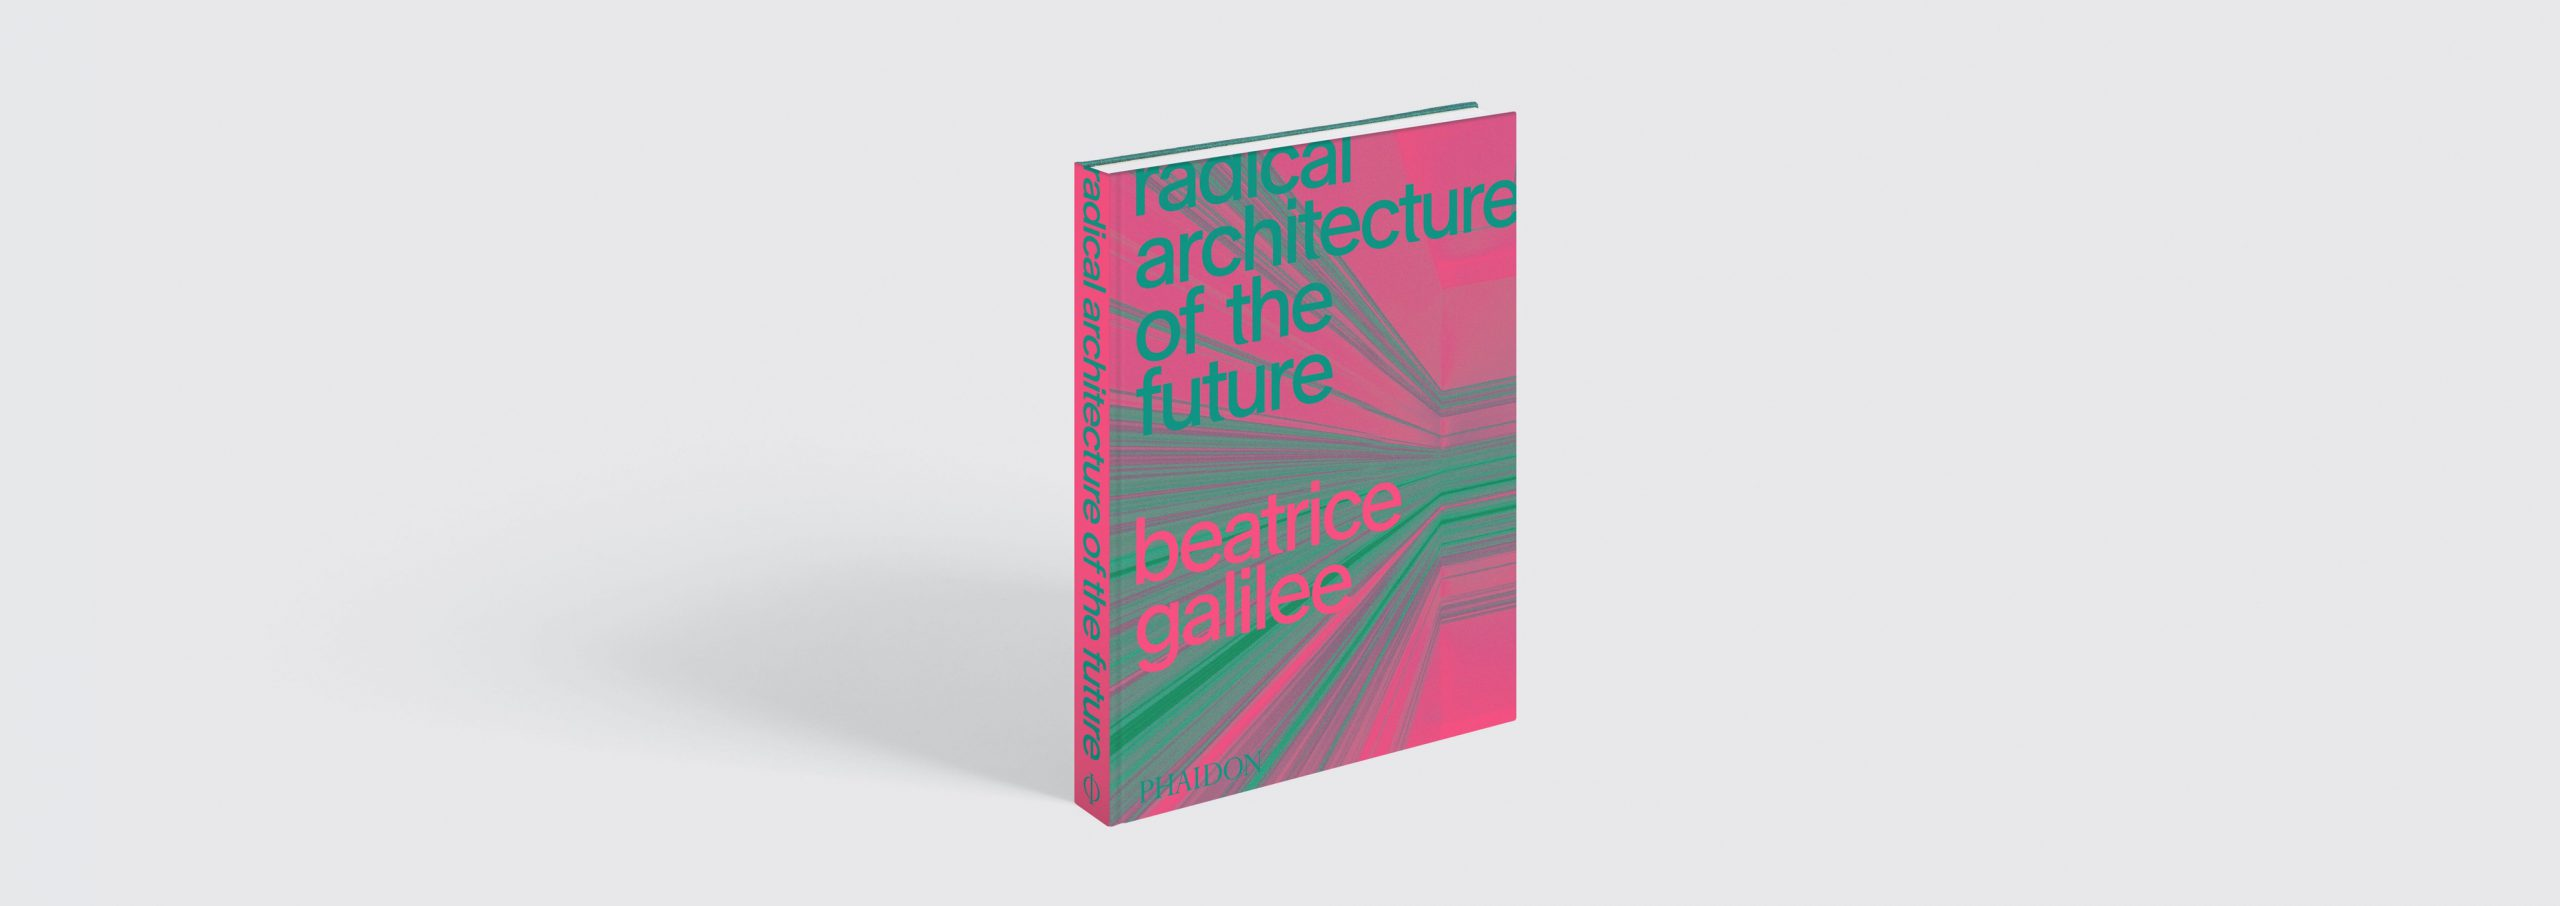 Radical Architecture of the Future by Beatrice Galilee